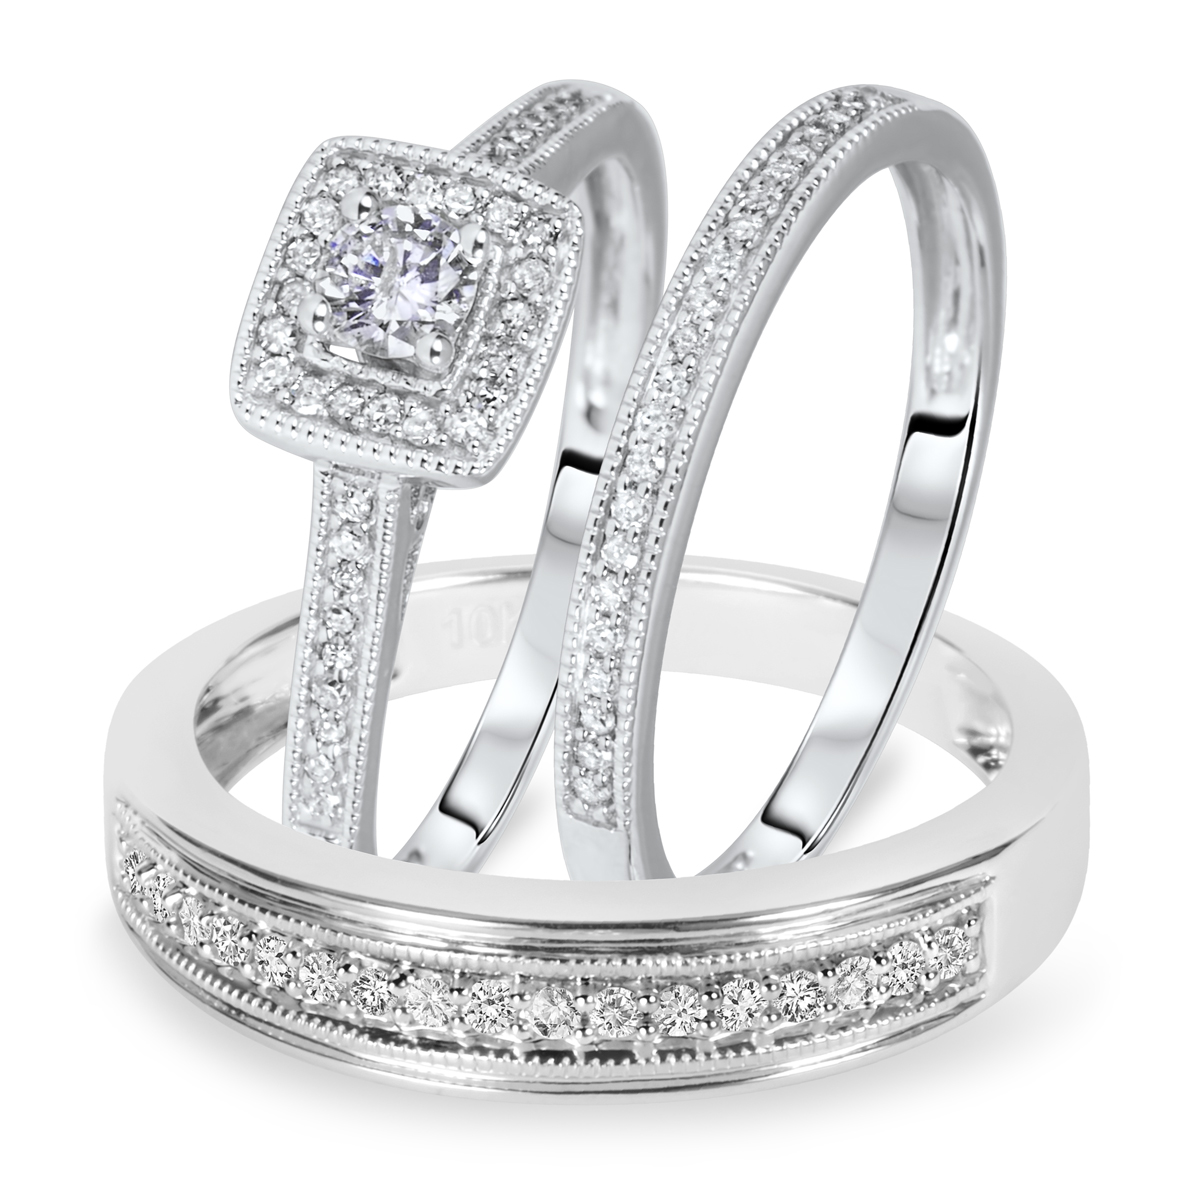 ... Round Cut Diamond Matching Trio Wedding Ring Set 14K White Gold